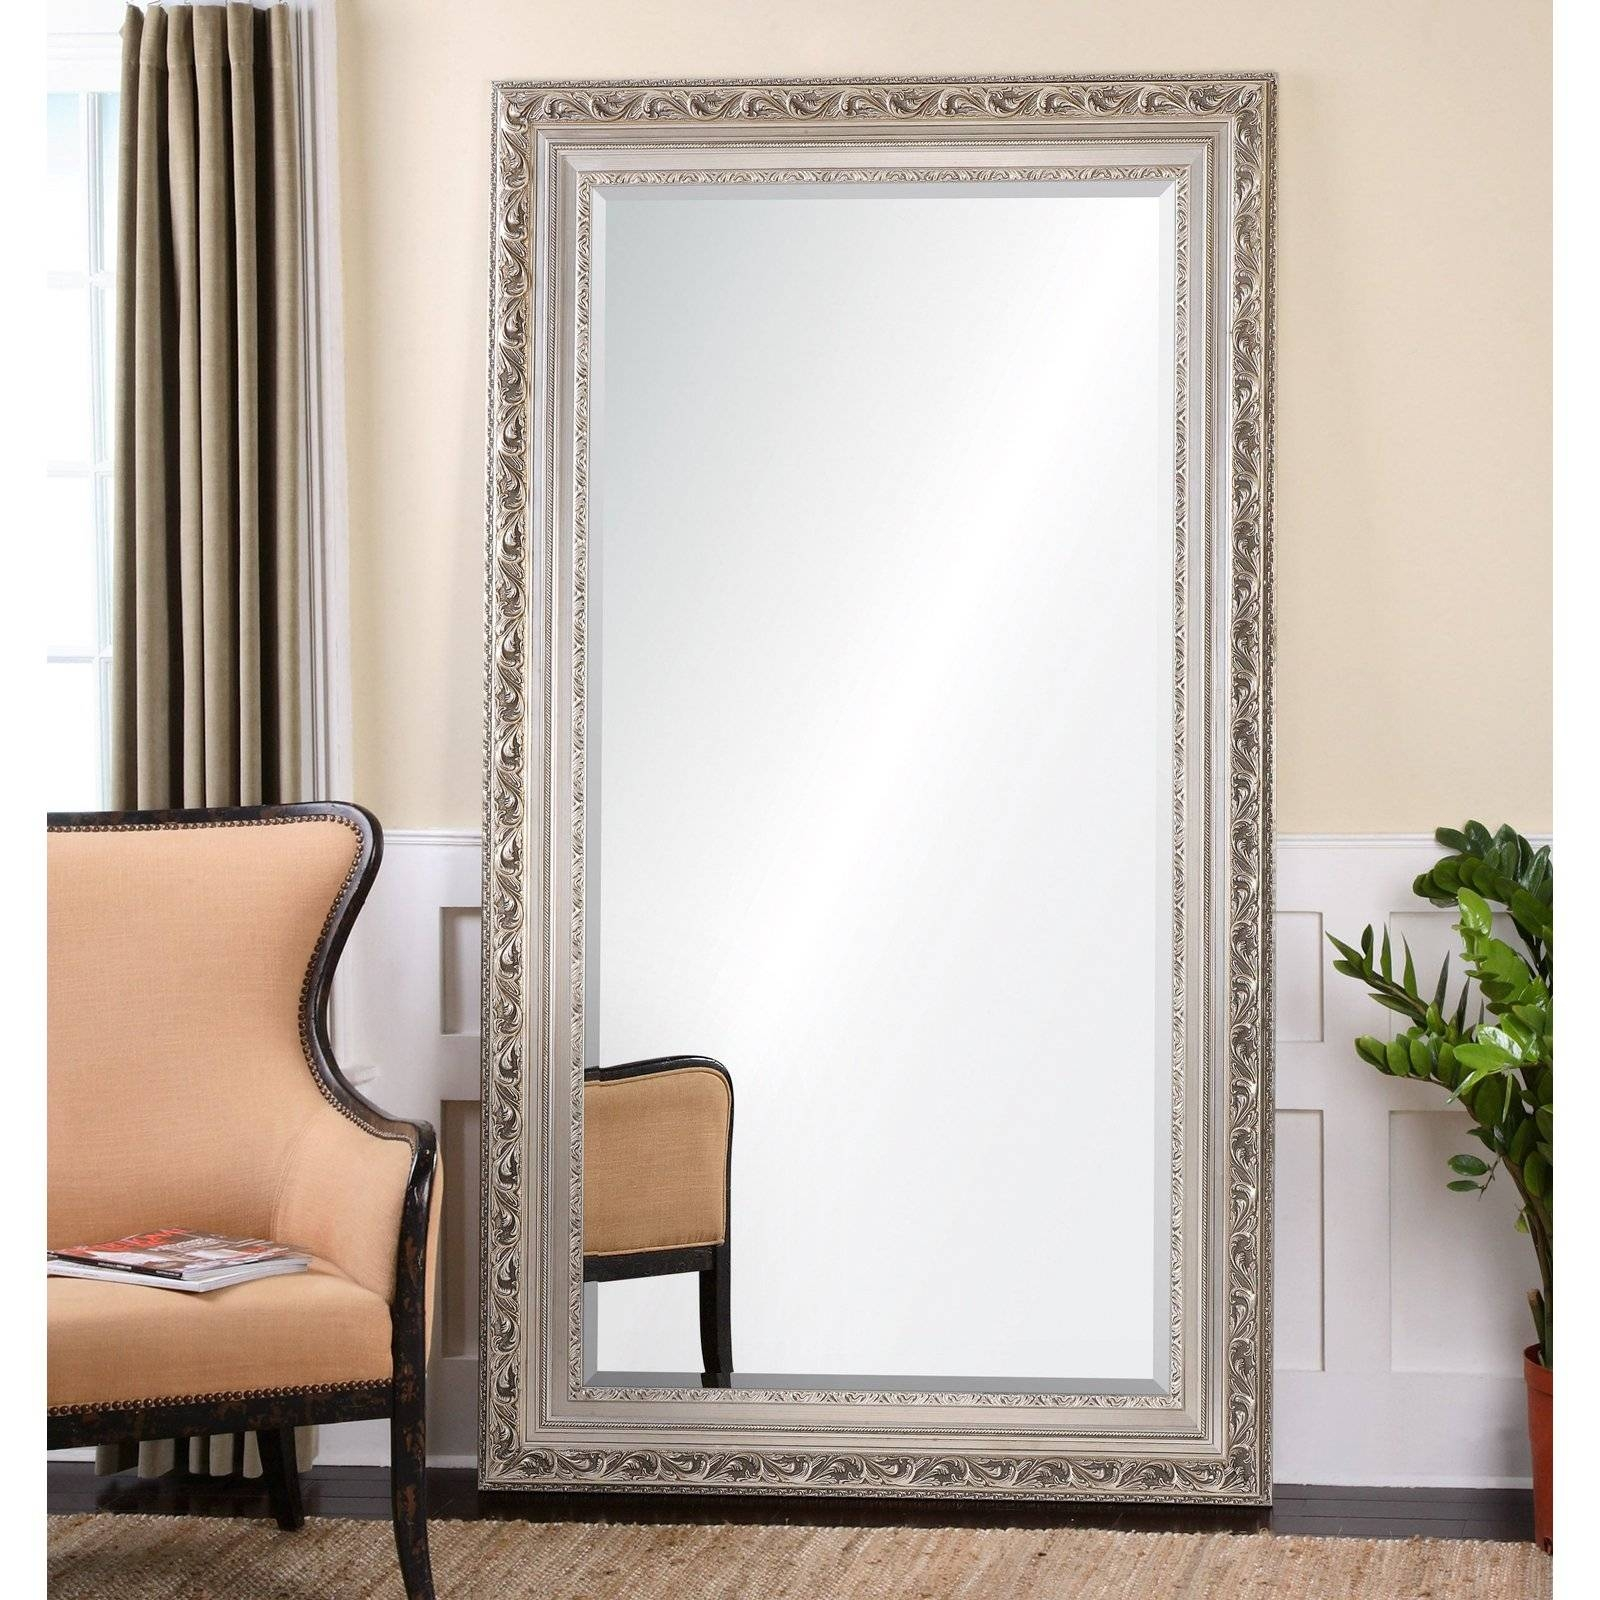 Large Wall Mirrors For Sale Cheap | Vanity Decoration Throughout Cheap Mirrors (View 13 of 15)